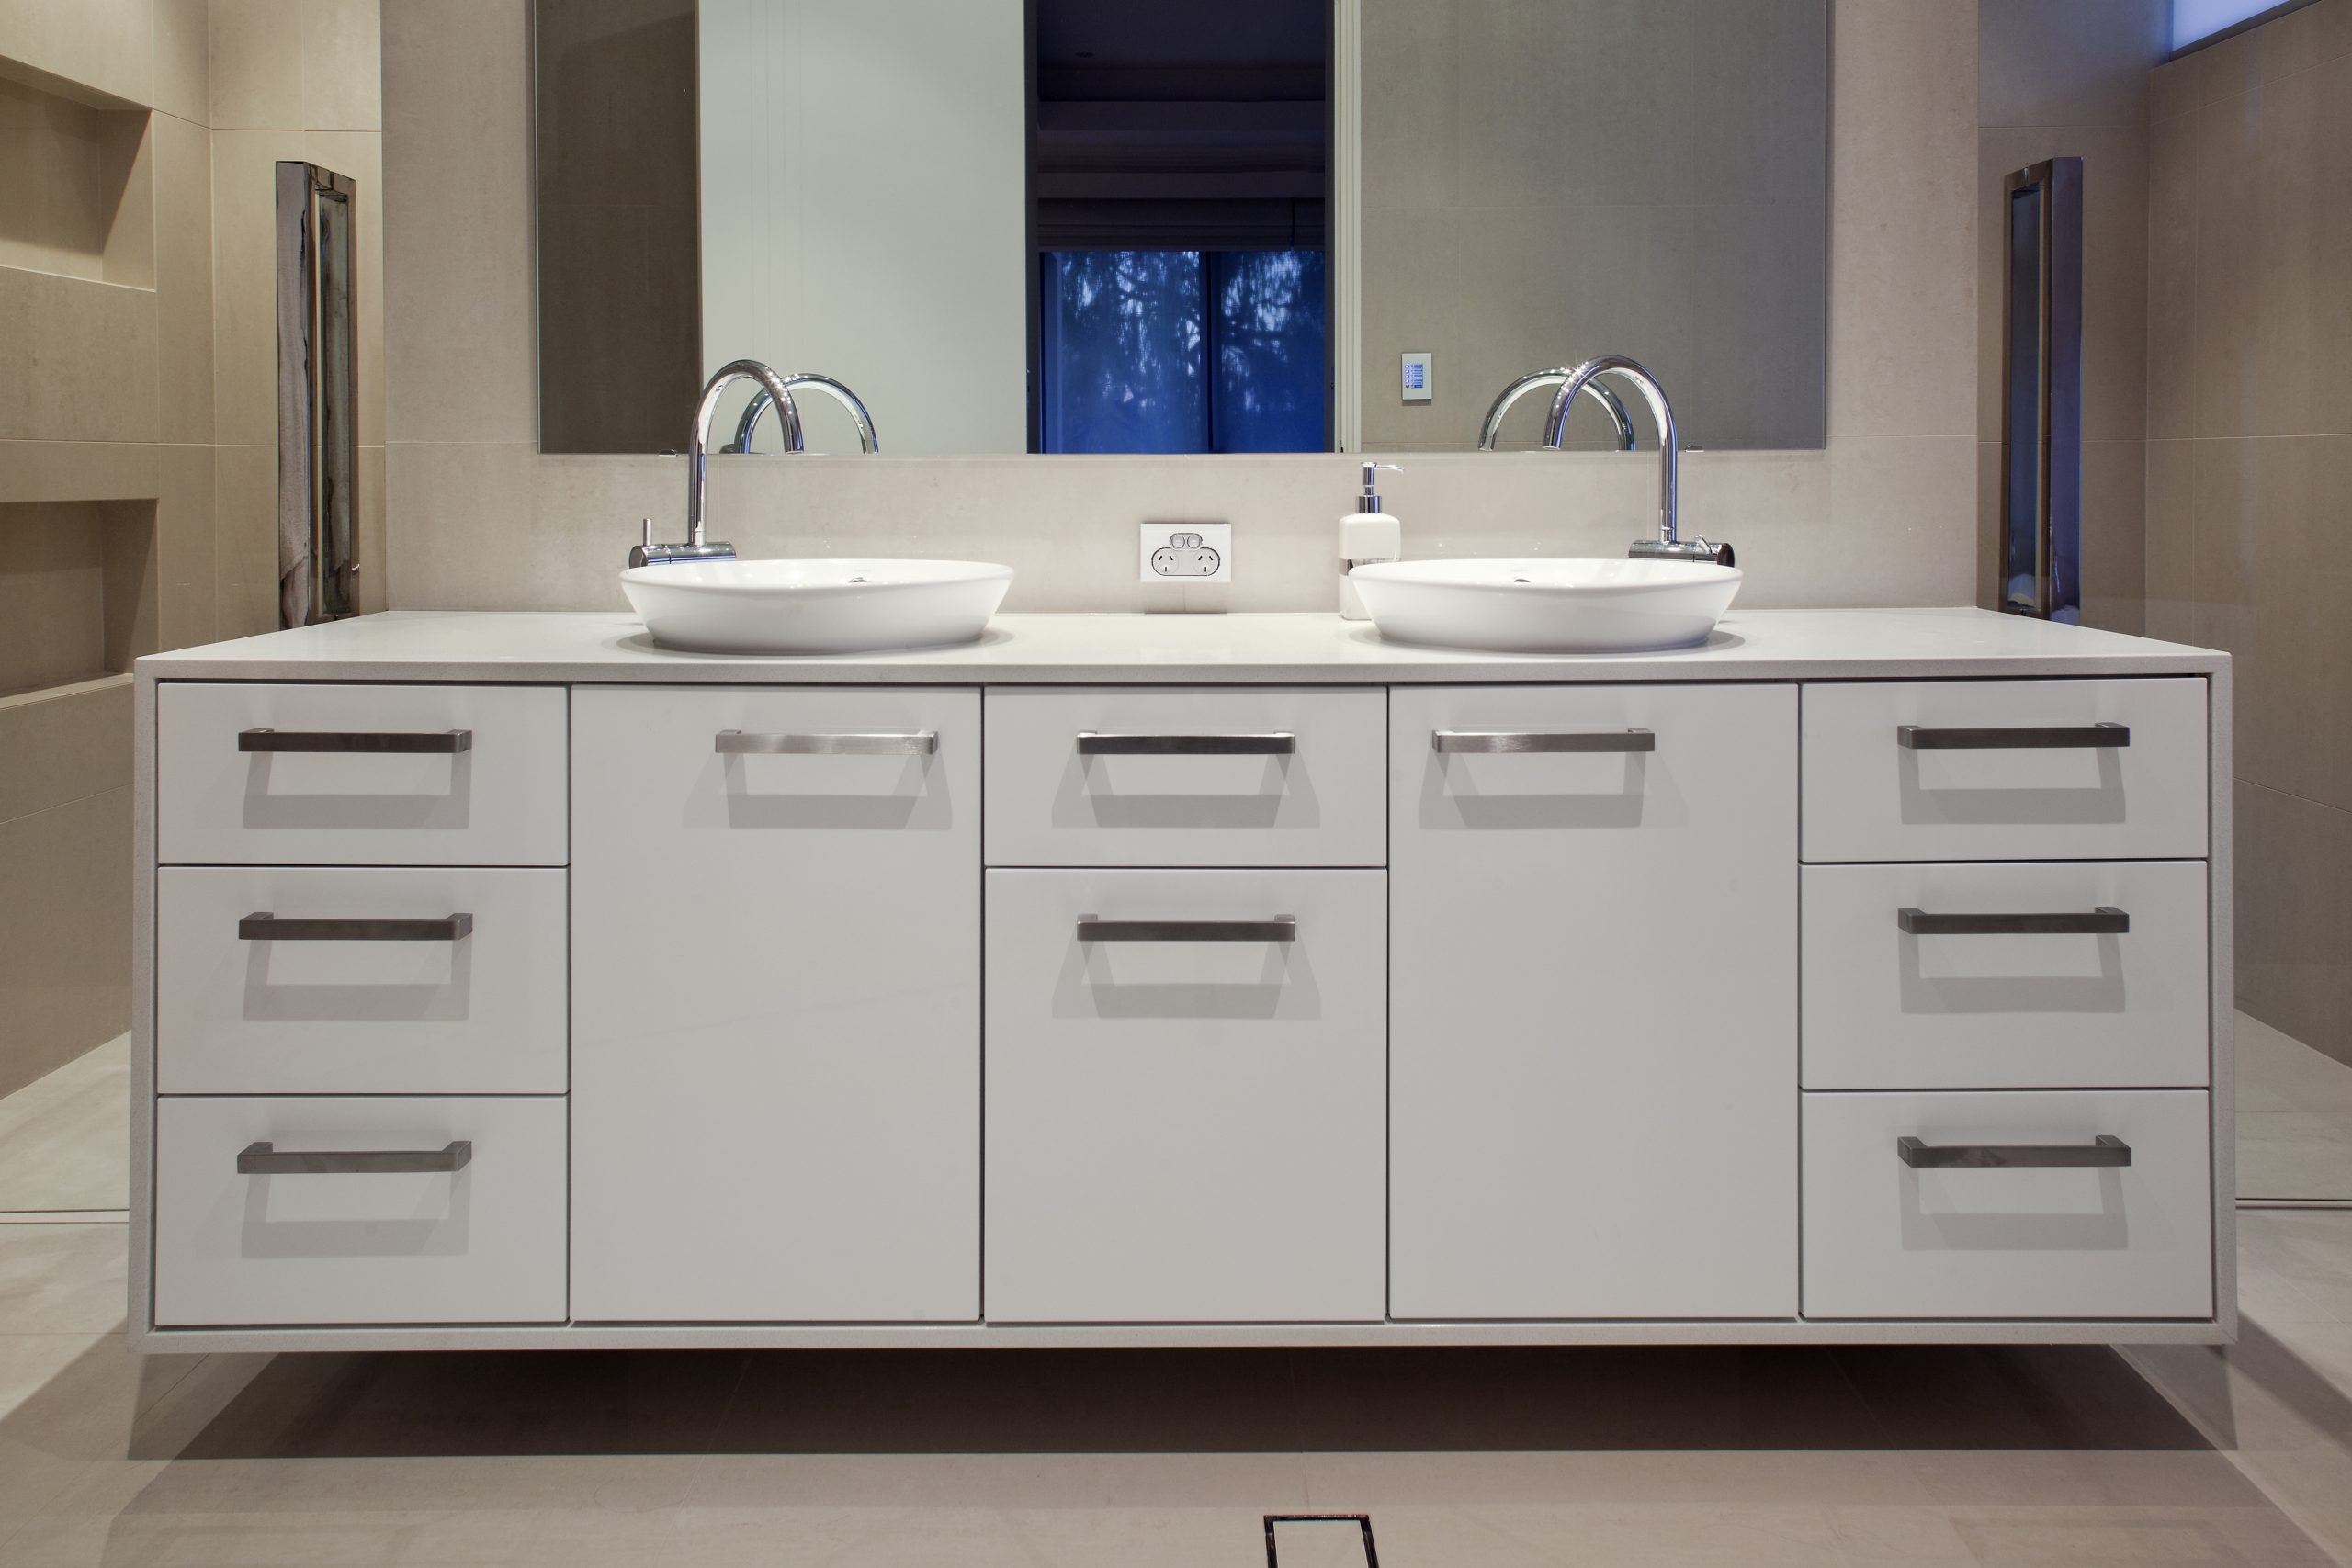 bravvo porcelain stone bathroom surface and sinks